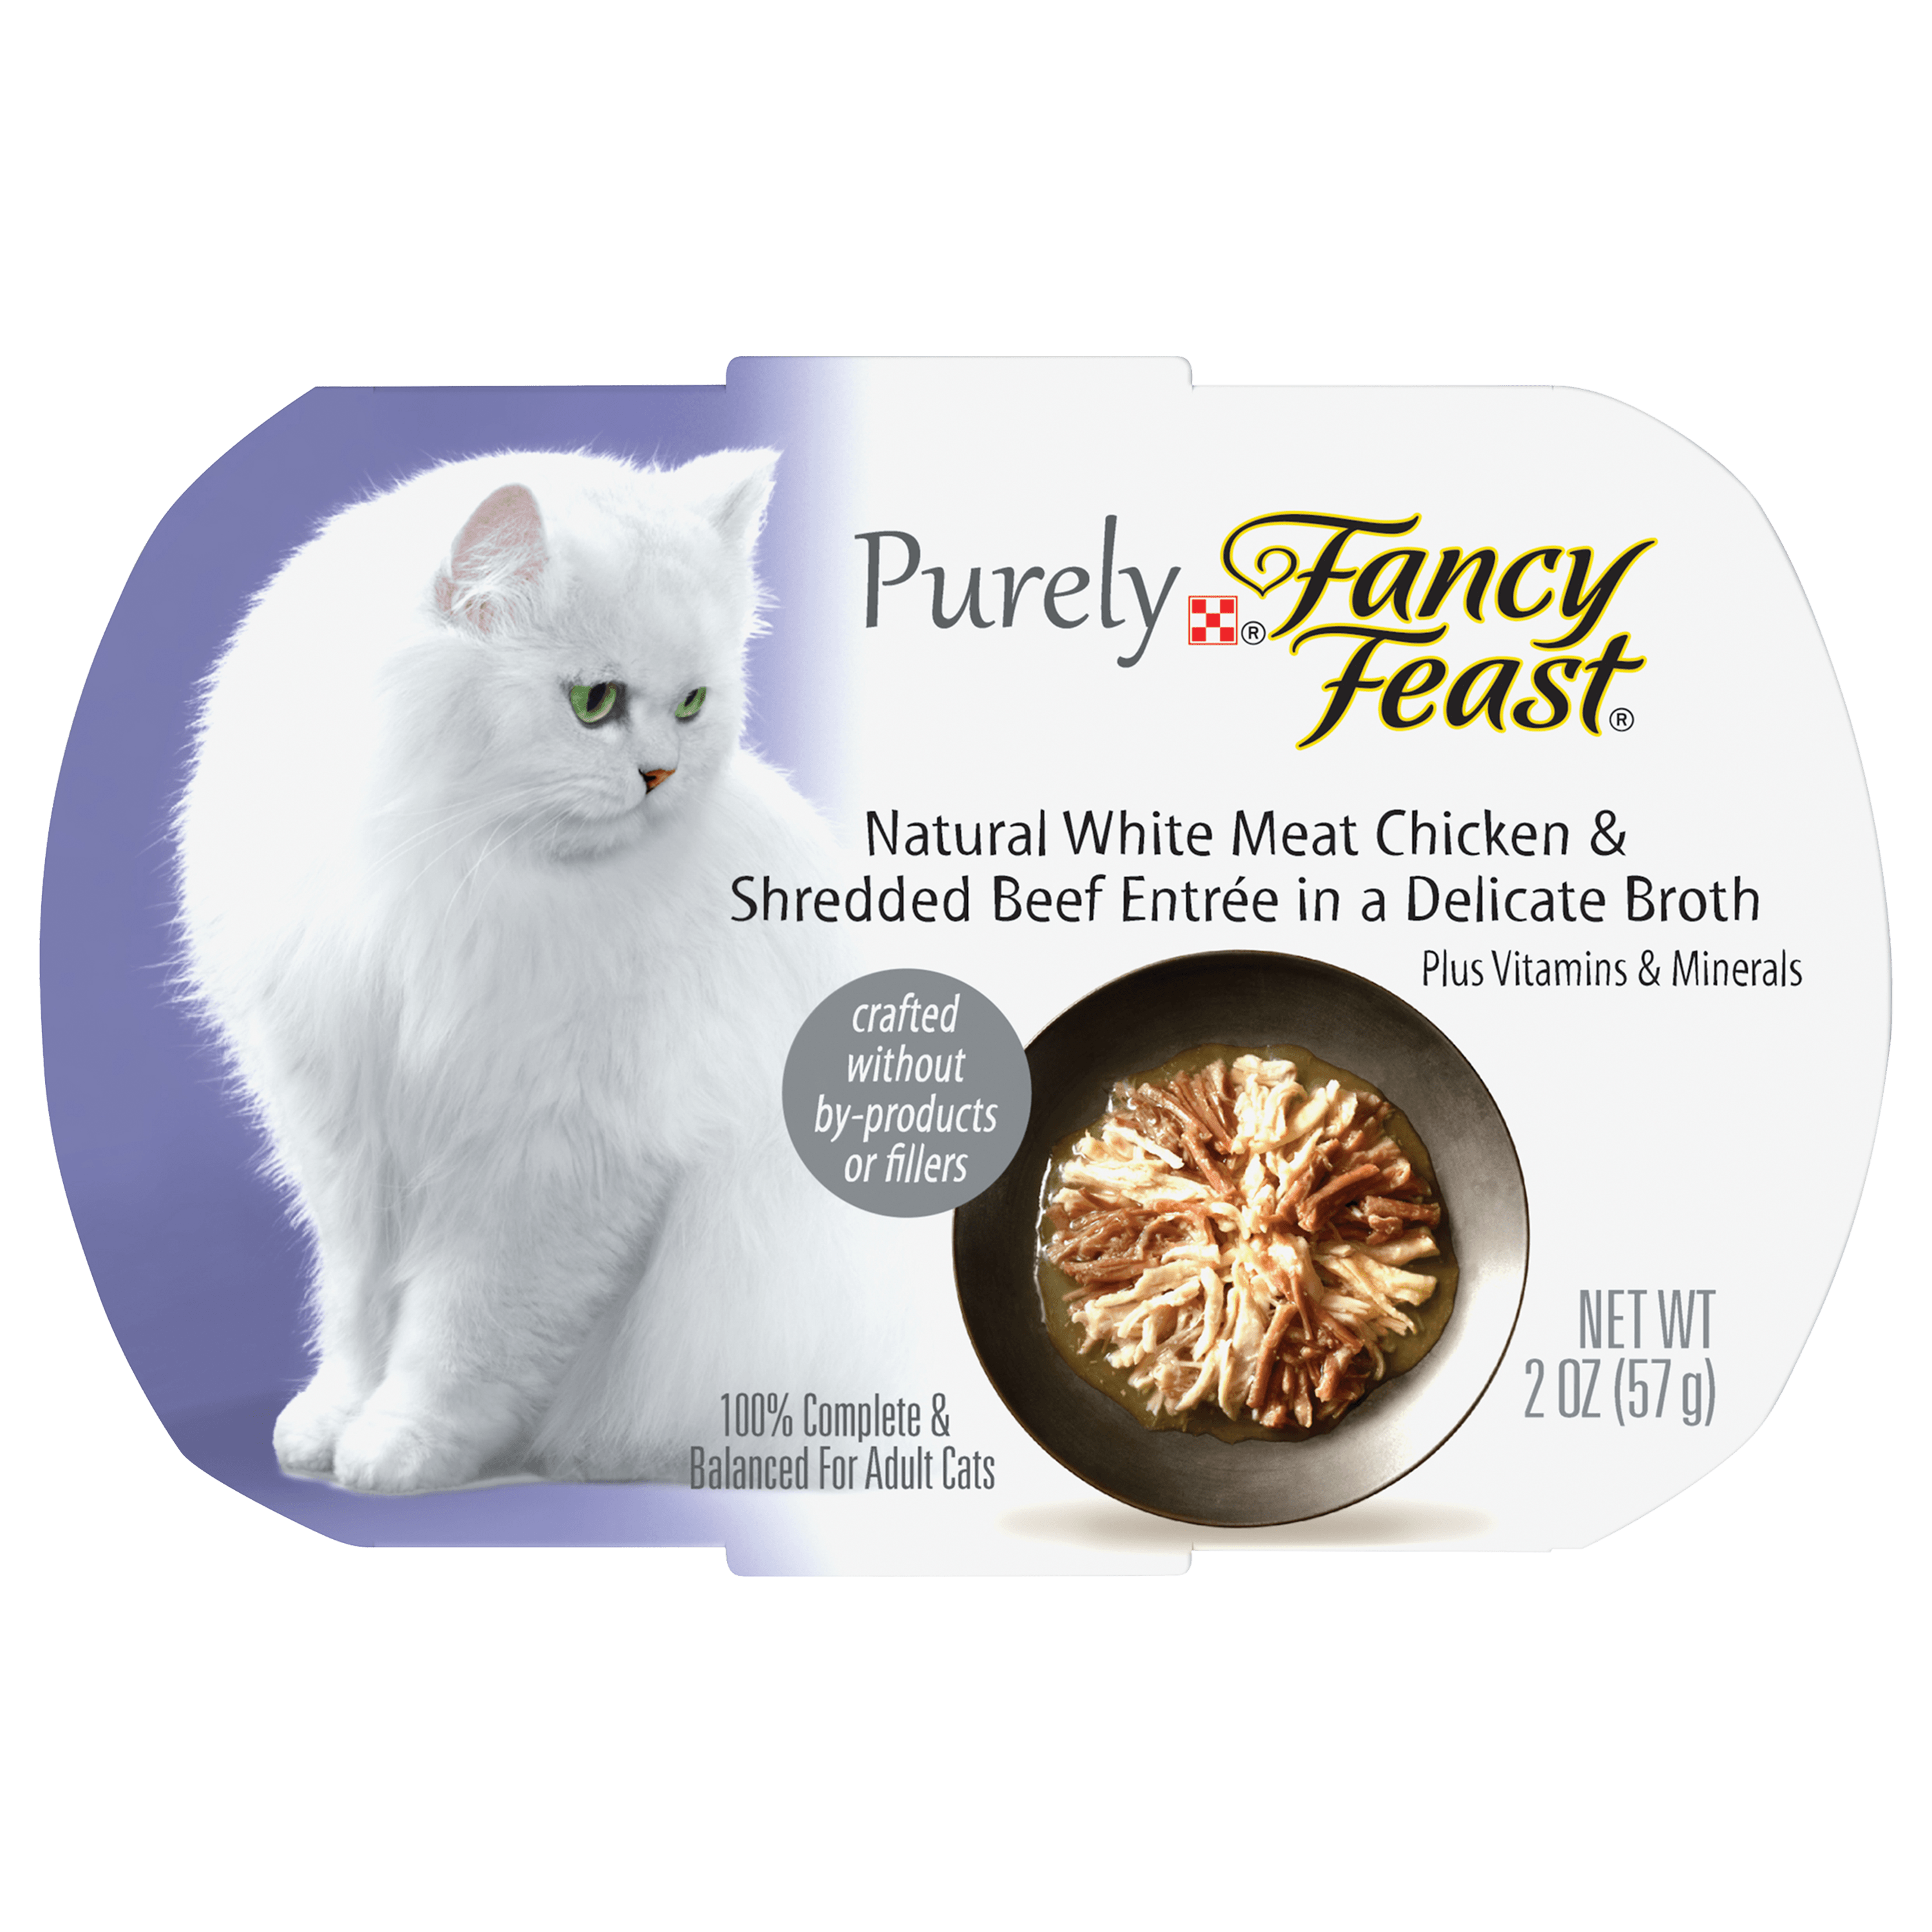 (4 Pack) Purina Fancy Feast Purely Natural White Meat Chicken & Shredded Beef Entree Adult Wet Cat Food - 2 oz. Tray